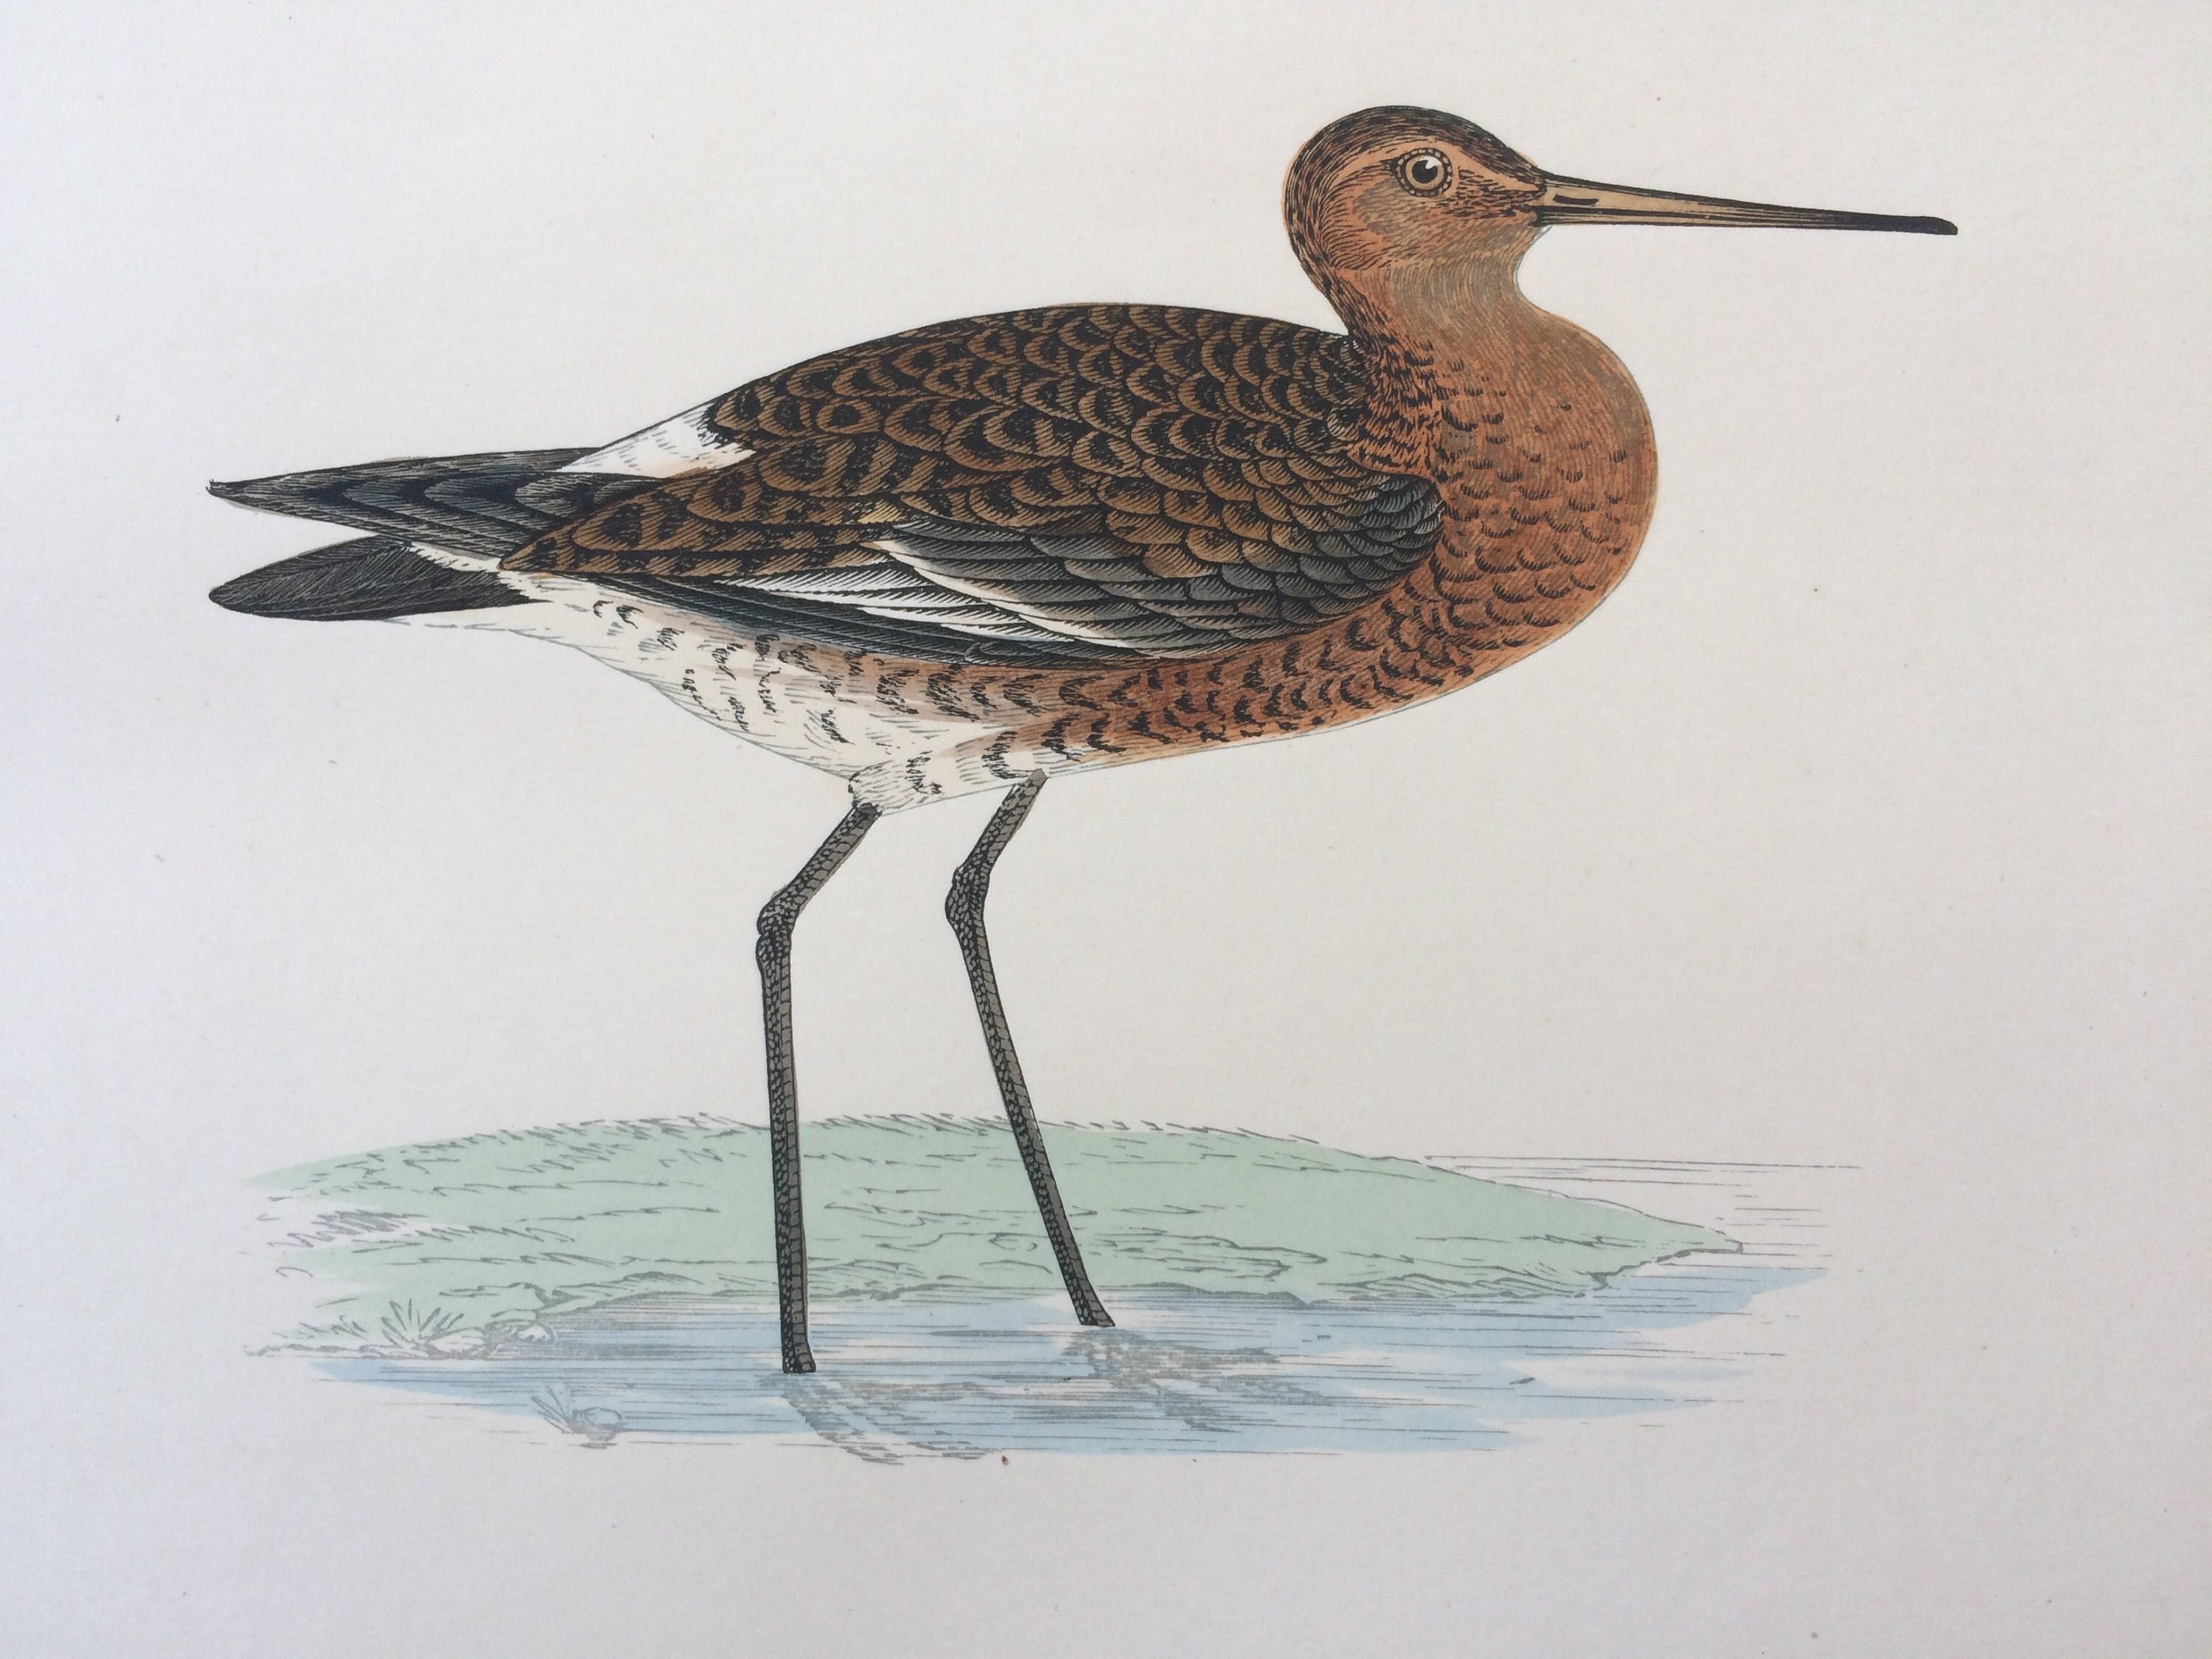 bb60e359afc 1903 Black-Tailed Godwit Original Antique Matted Hand-Coloured Engraving -  Ornithology - Bird